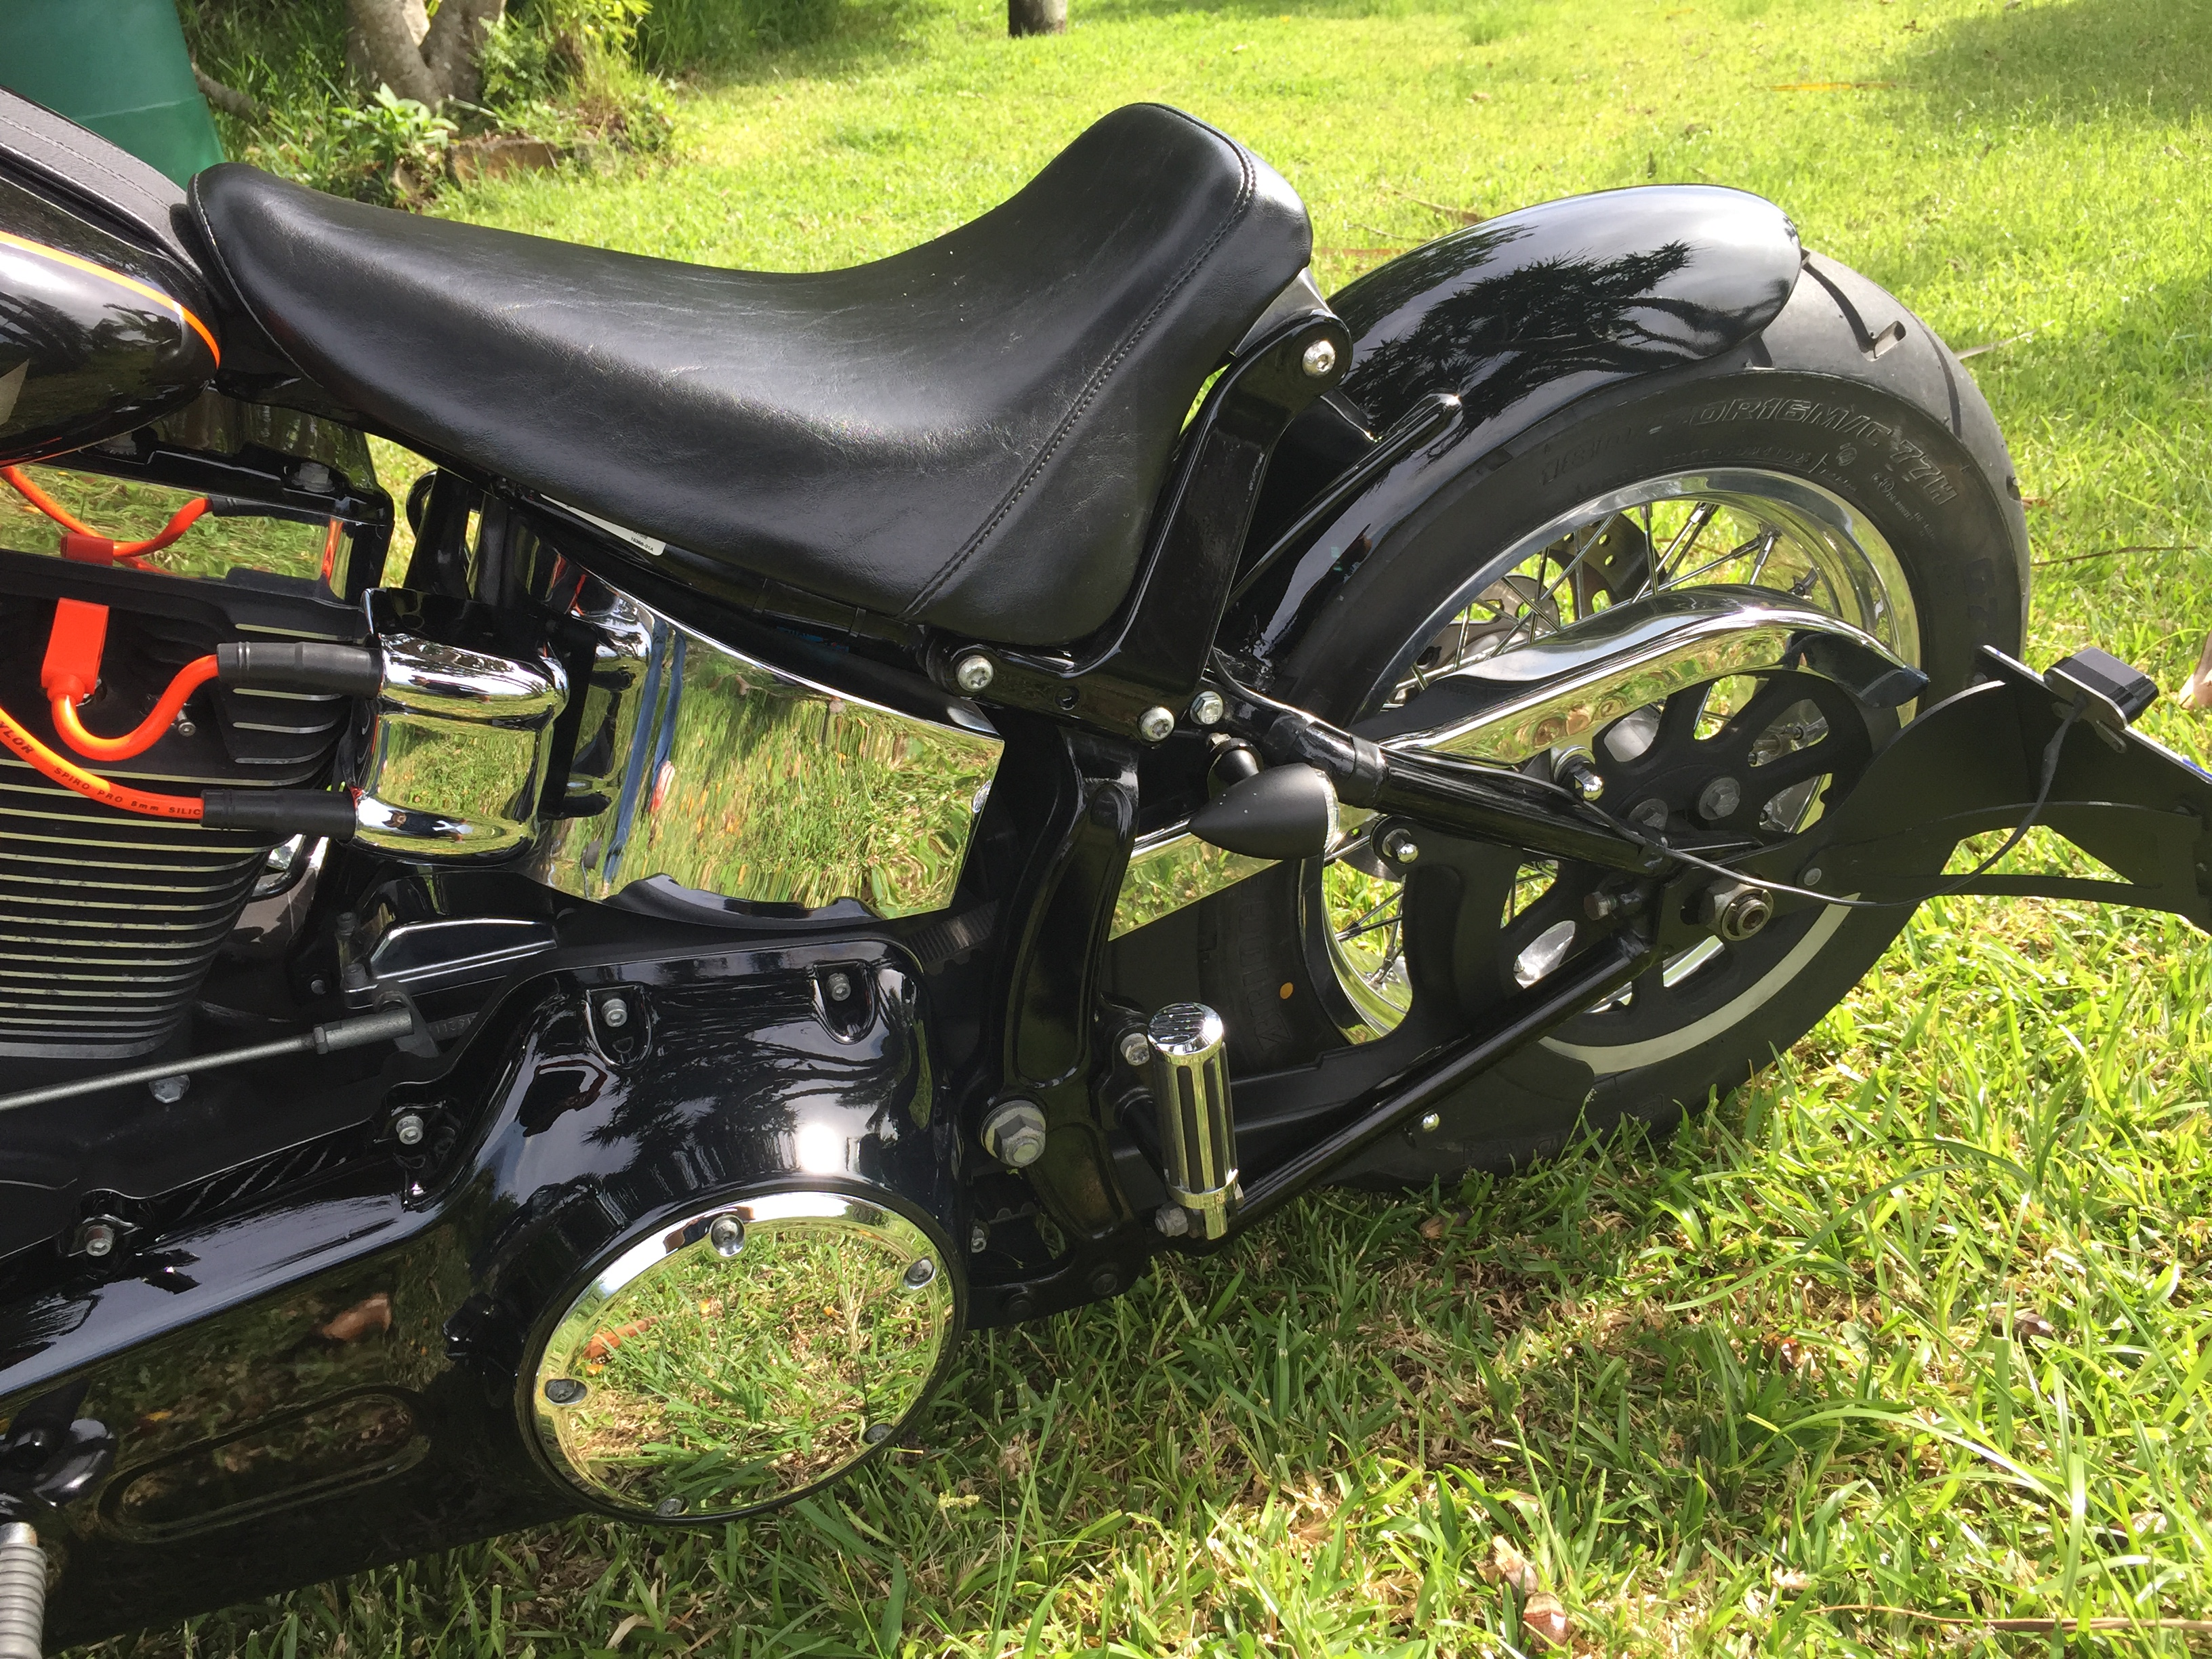 Moto Harley Davidson customisé par Run Iron Works